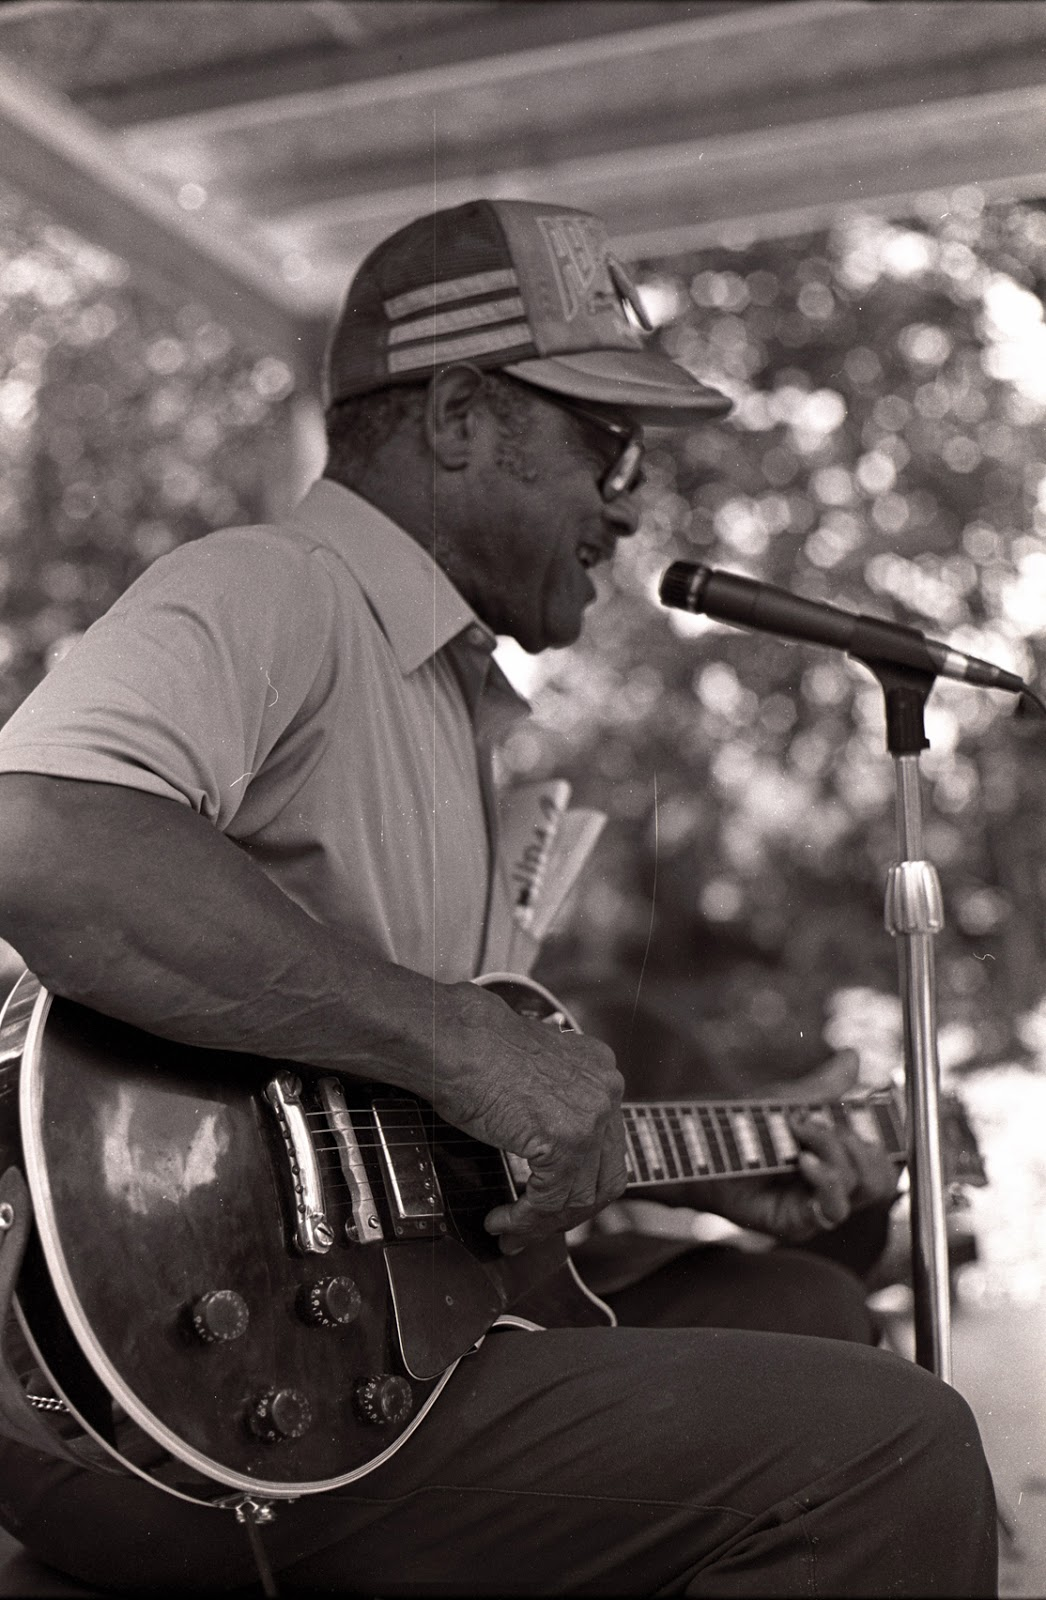 Library Archives News The Tennessee State And Gjm Guitars Design Build High Quality Electric Bud Garrett Of Free Hill Performs At Davy Crockett Days Limestone Washington County 1986 Arts Commission Folk Program Records